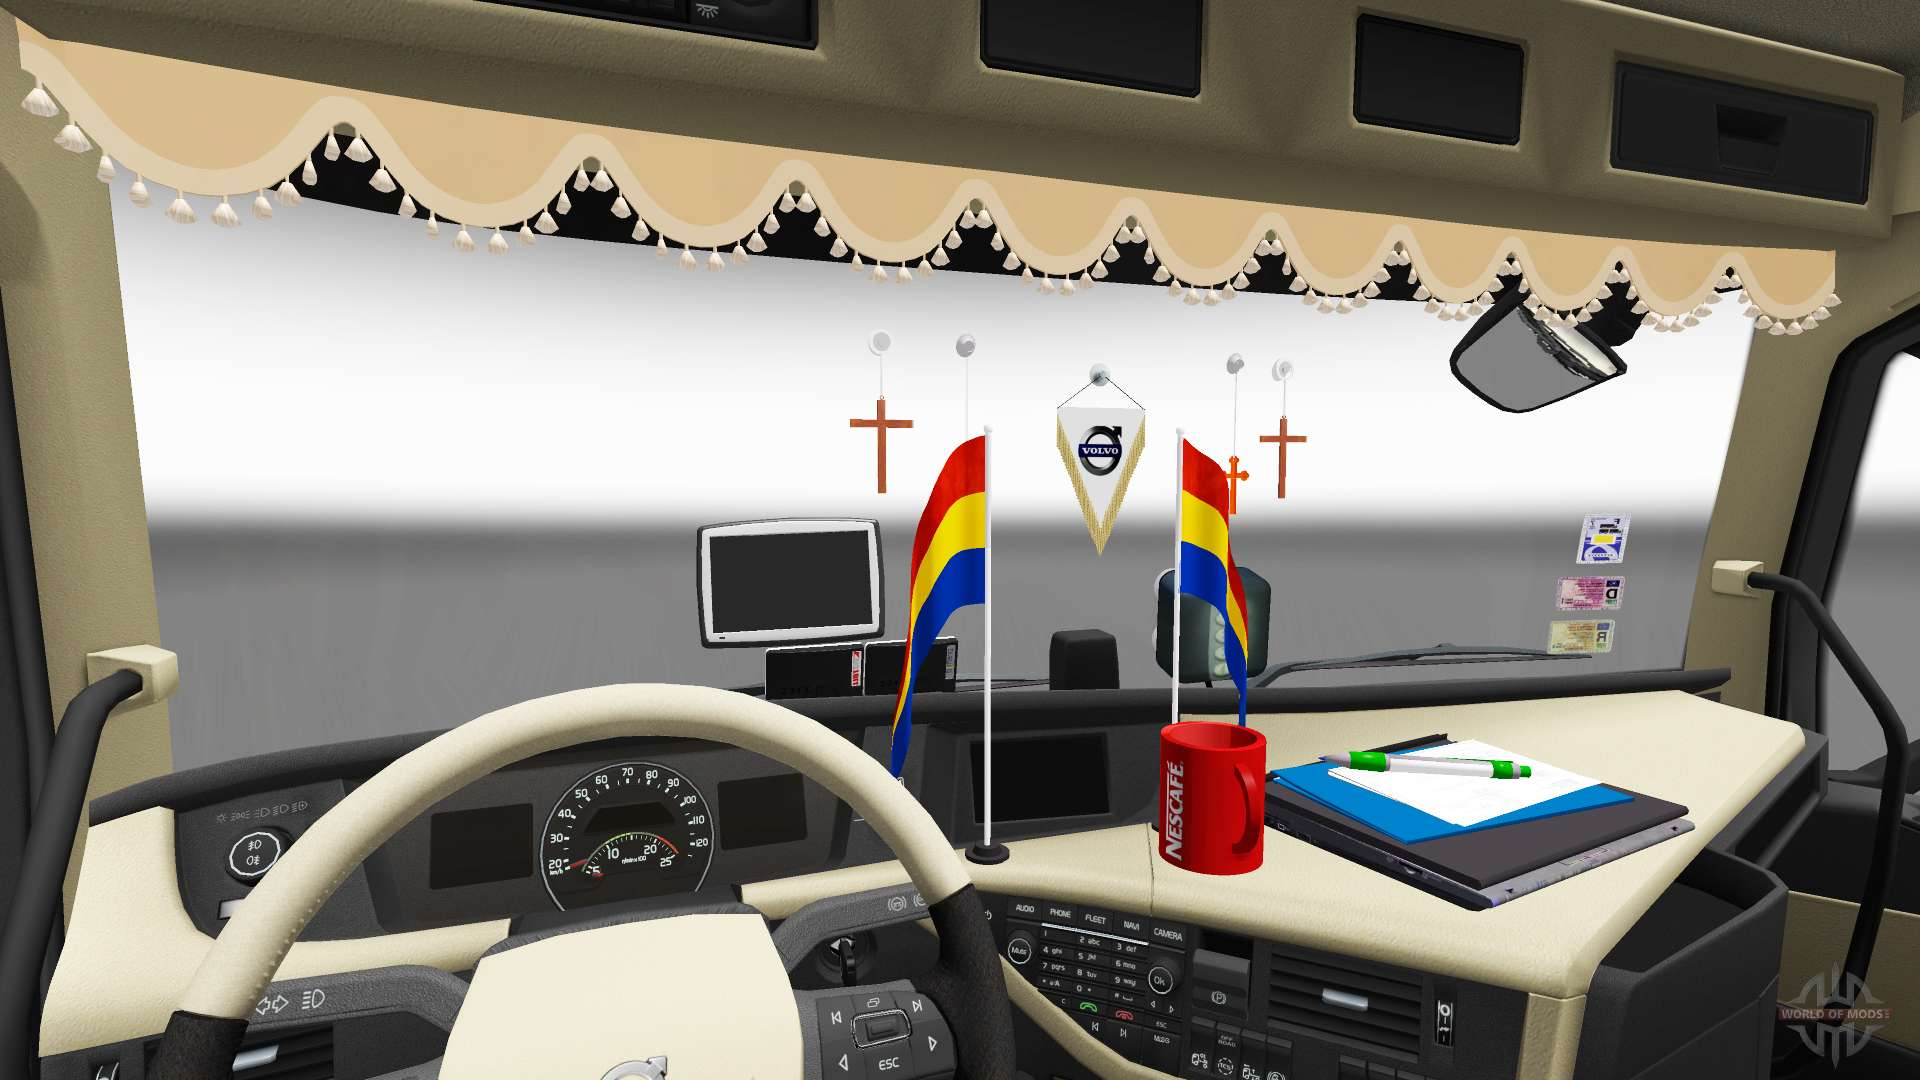 Updated interior volvo fh for euro truck simulator 2 for Interior design simulator free